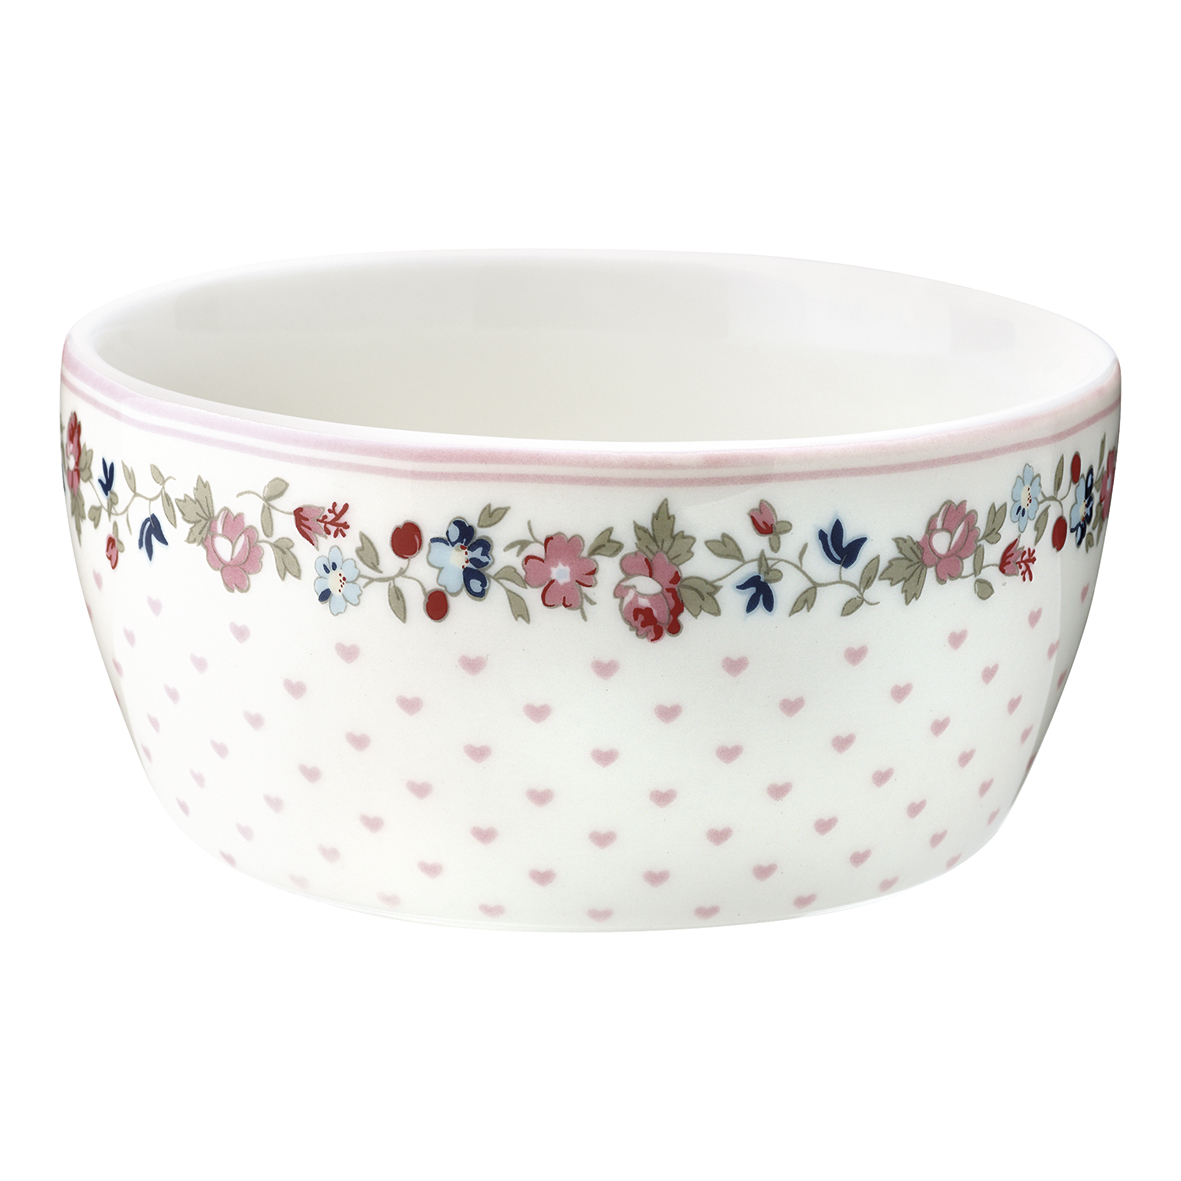 GG Ruby petit white kids bowl